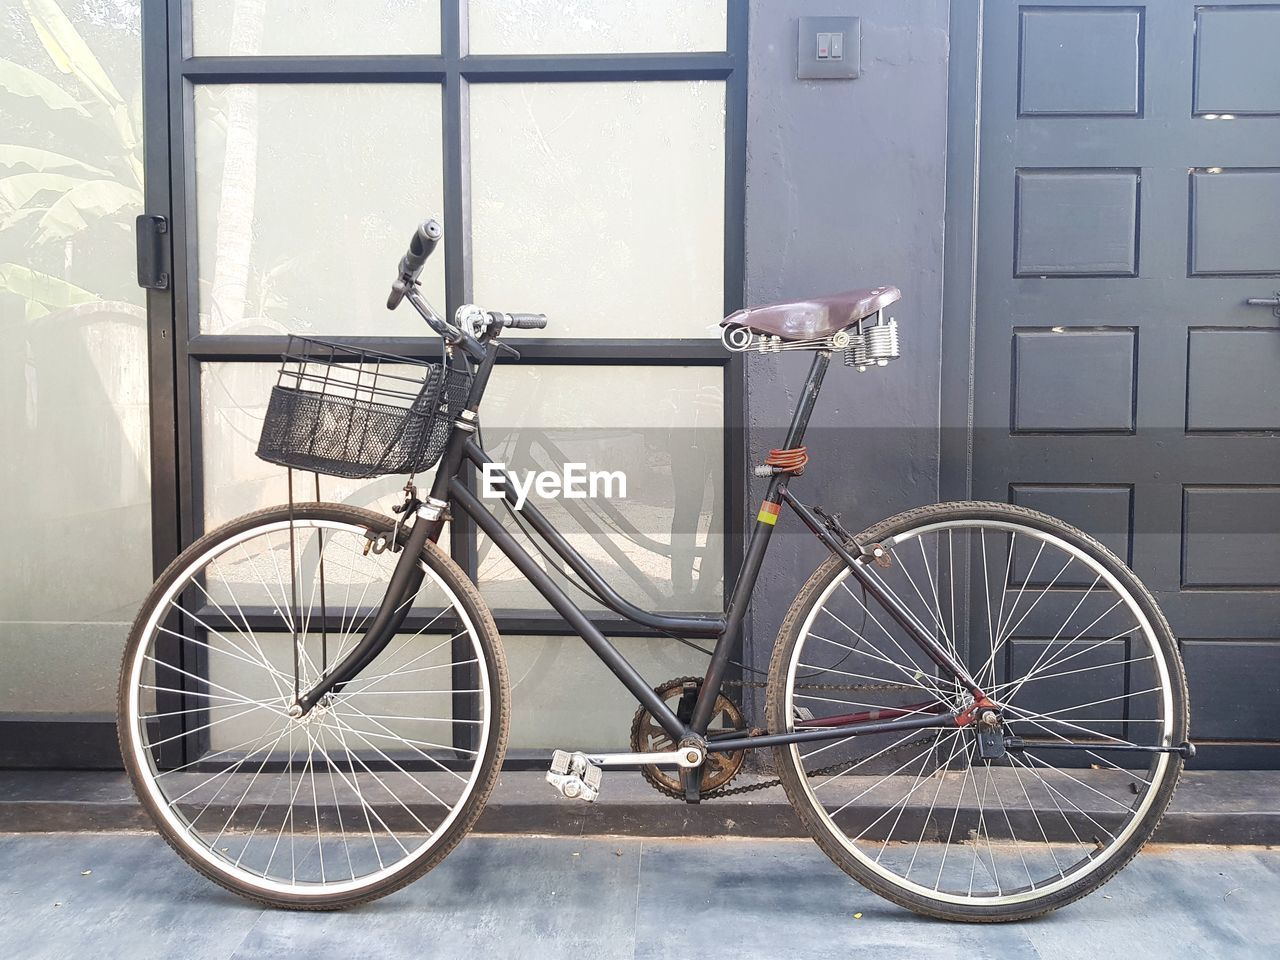 Bicycle parked against doors